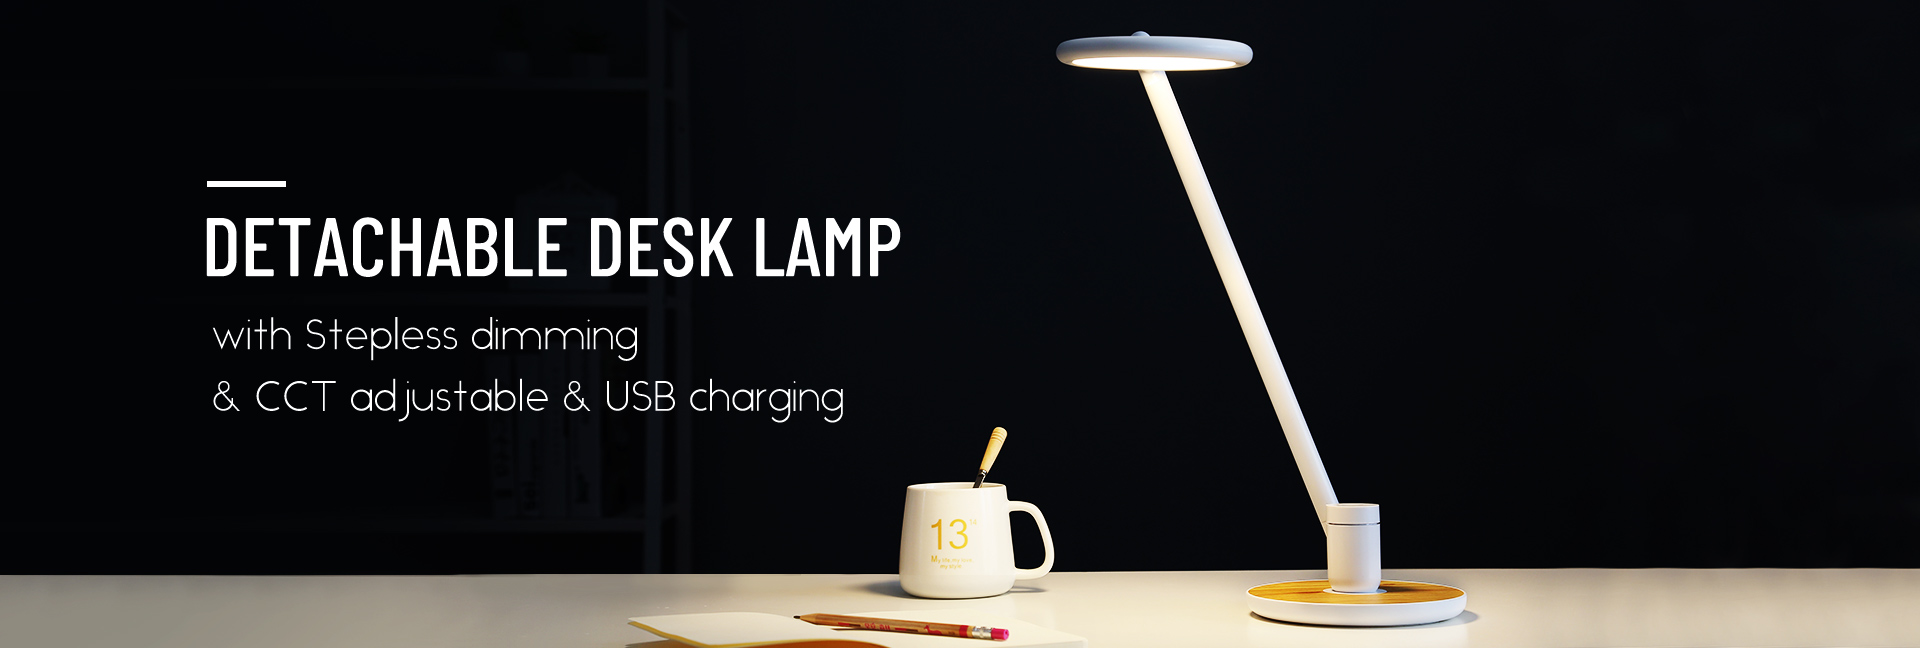 Detachable Desk Lamp